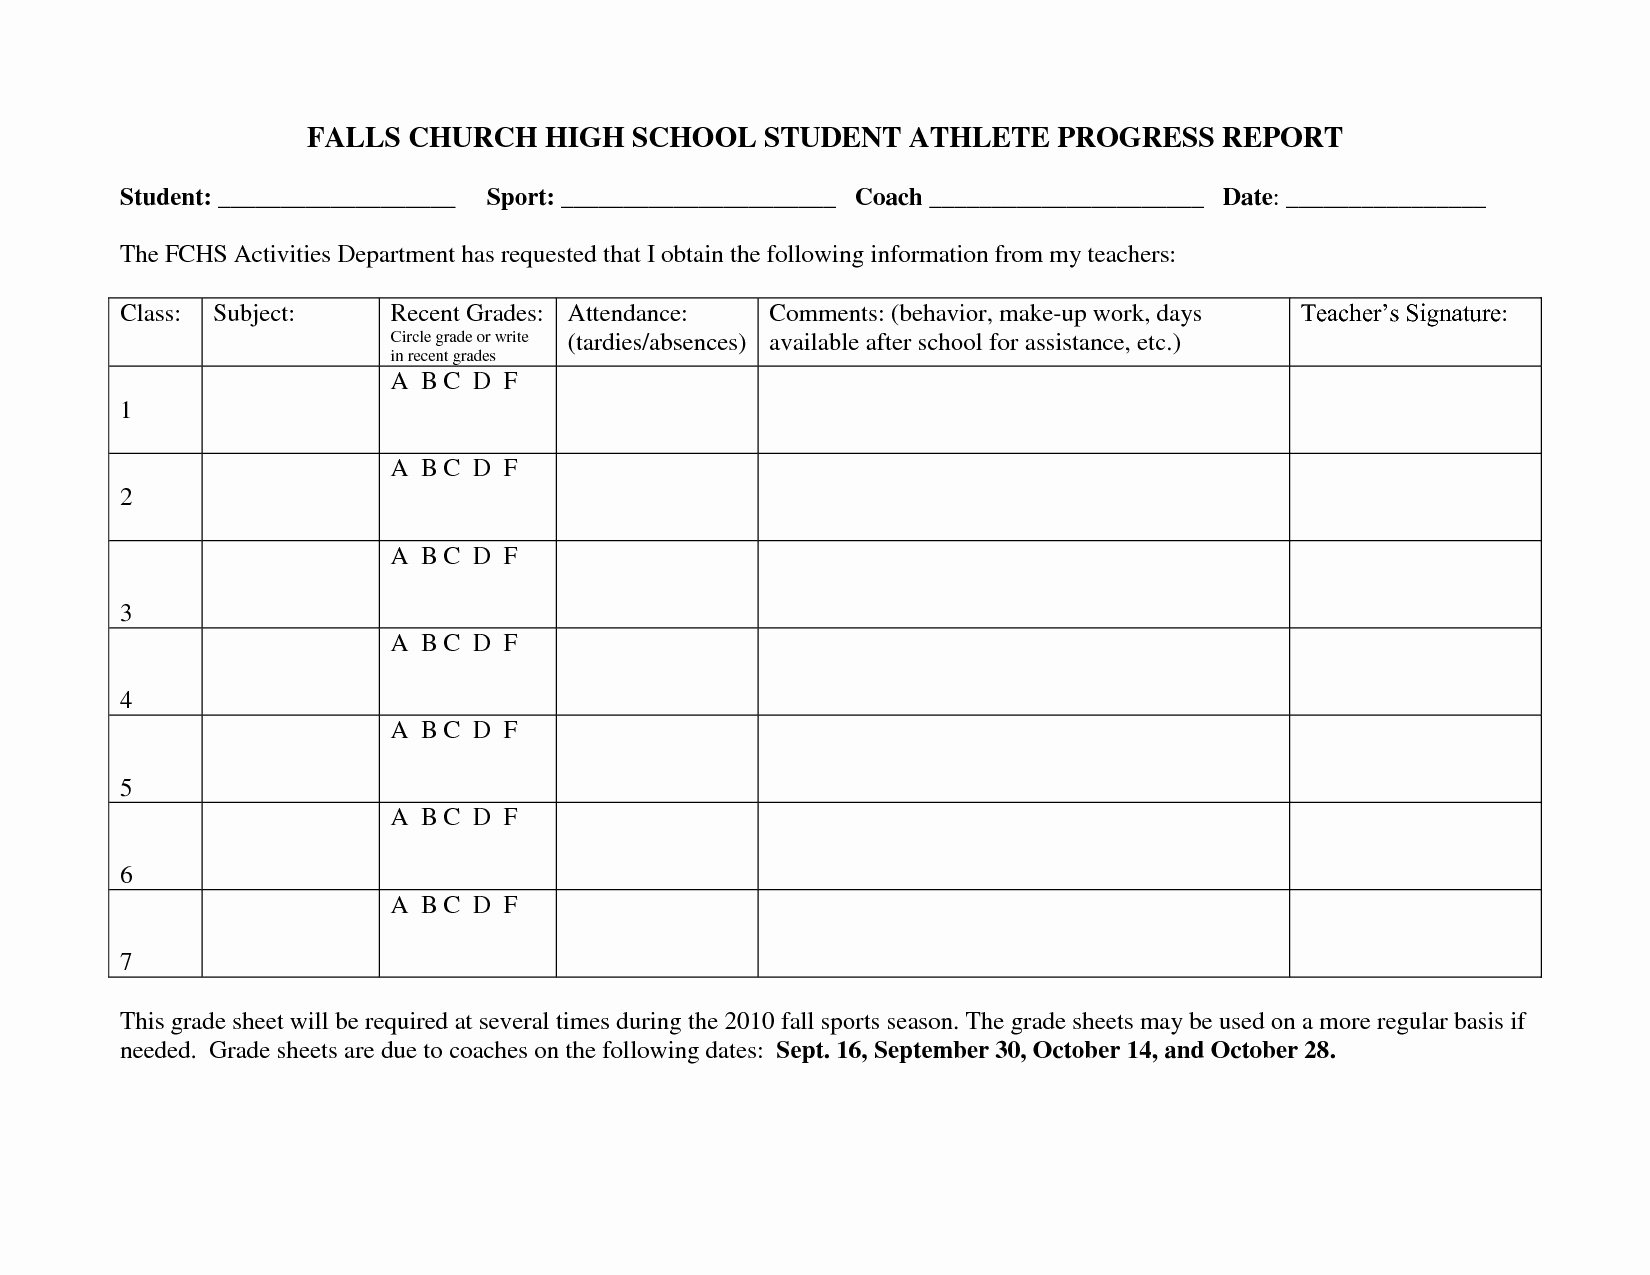 Daily Progress Report Template Awesome 25 Of High School Grade Report Template